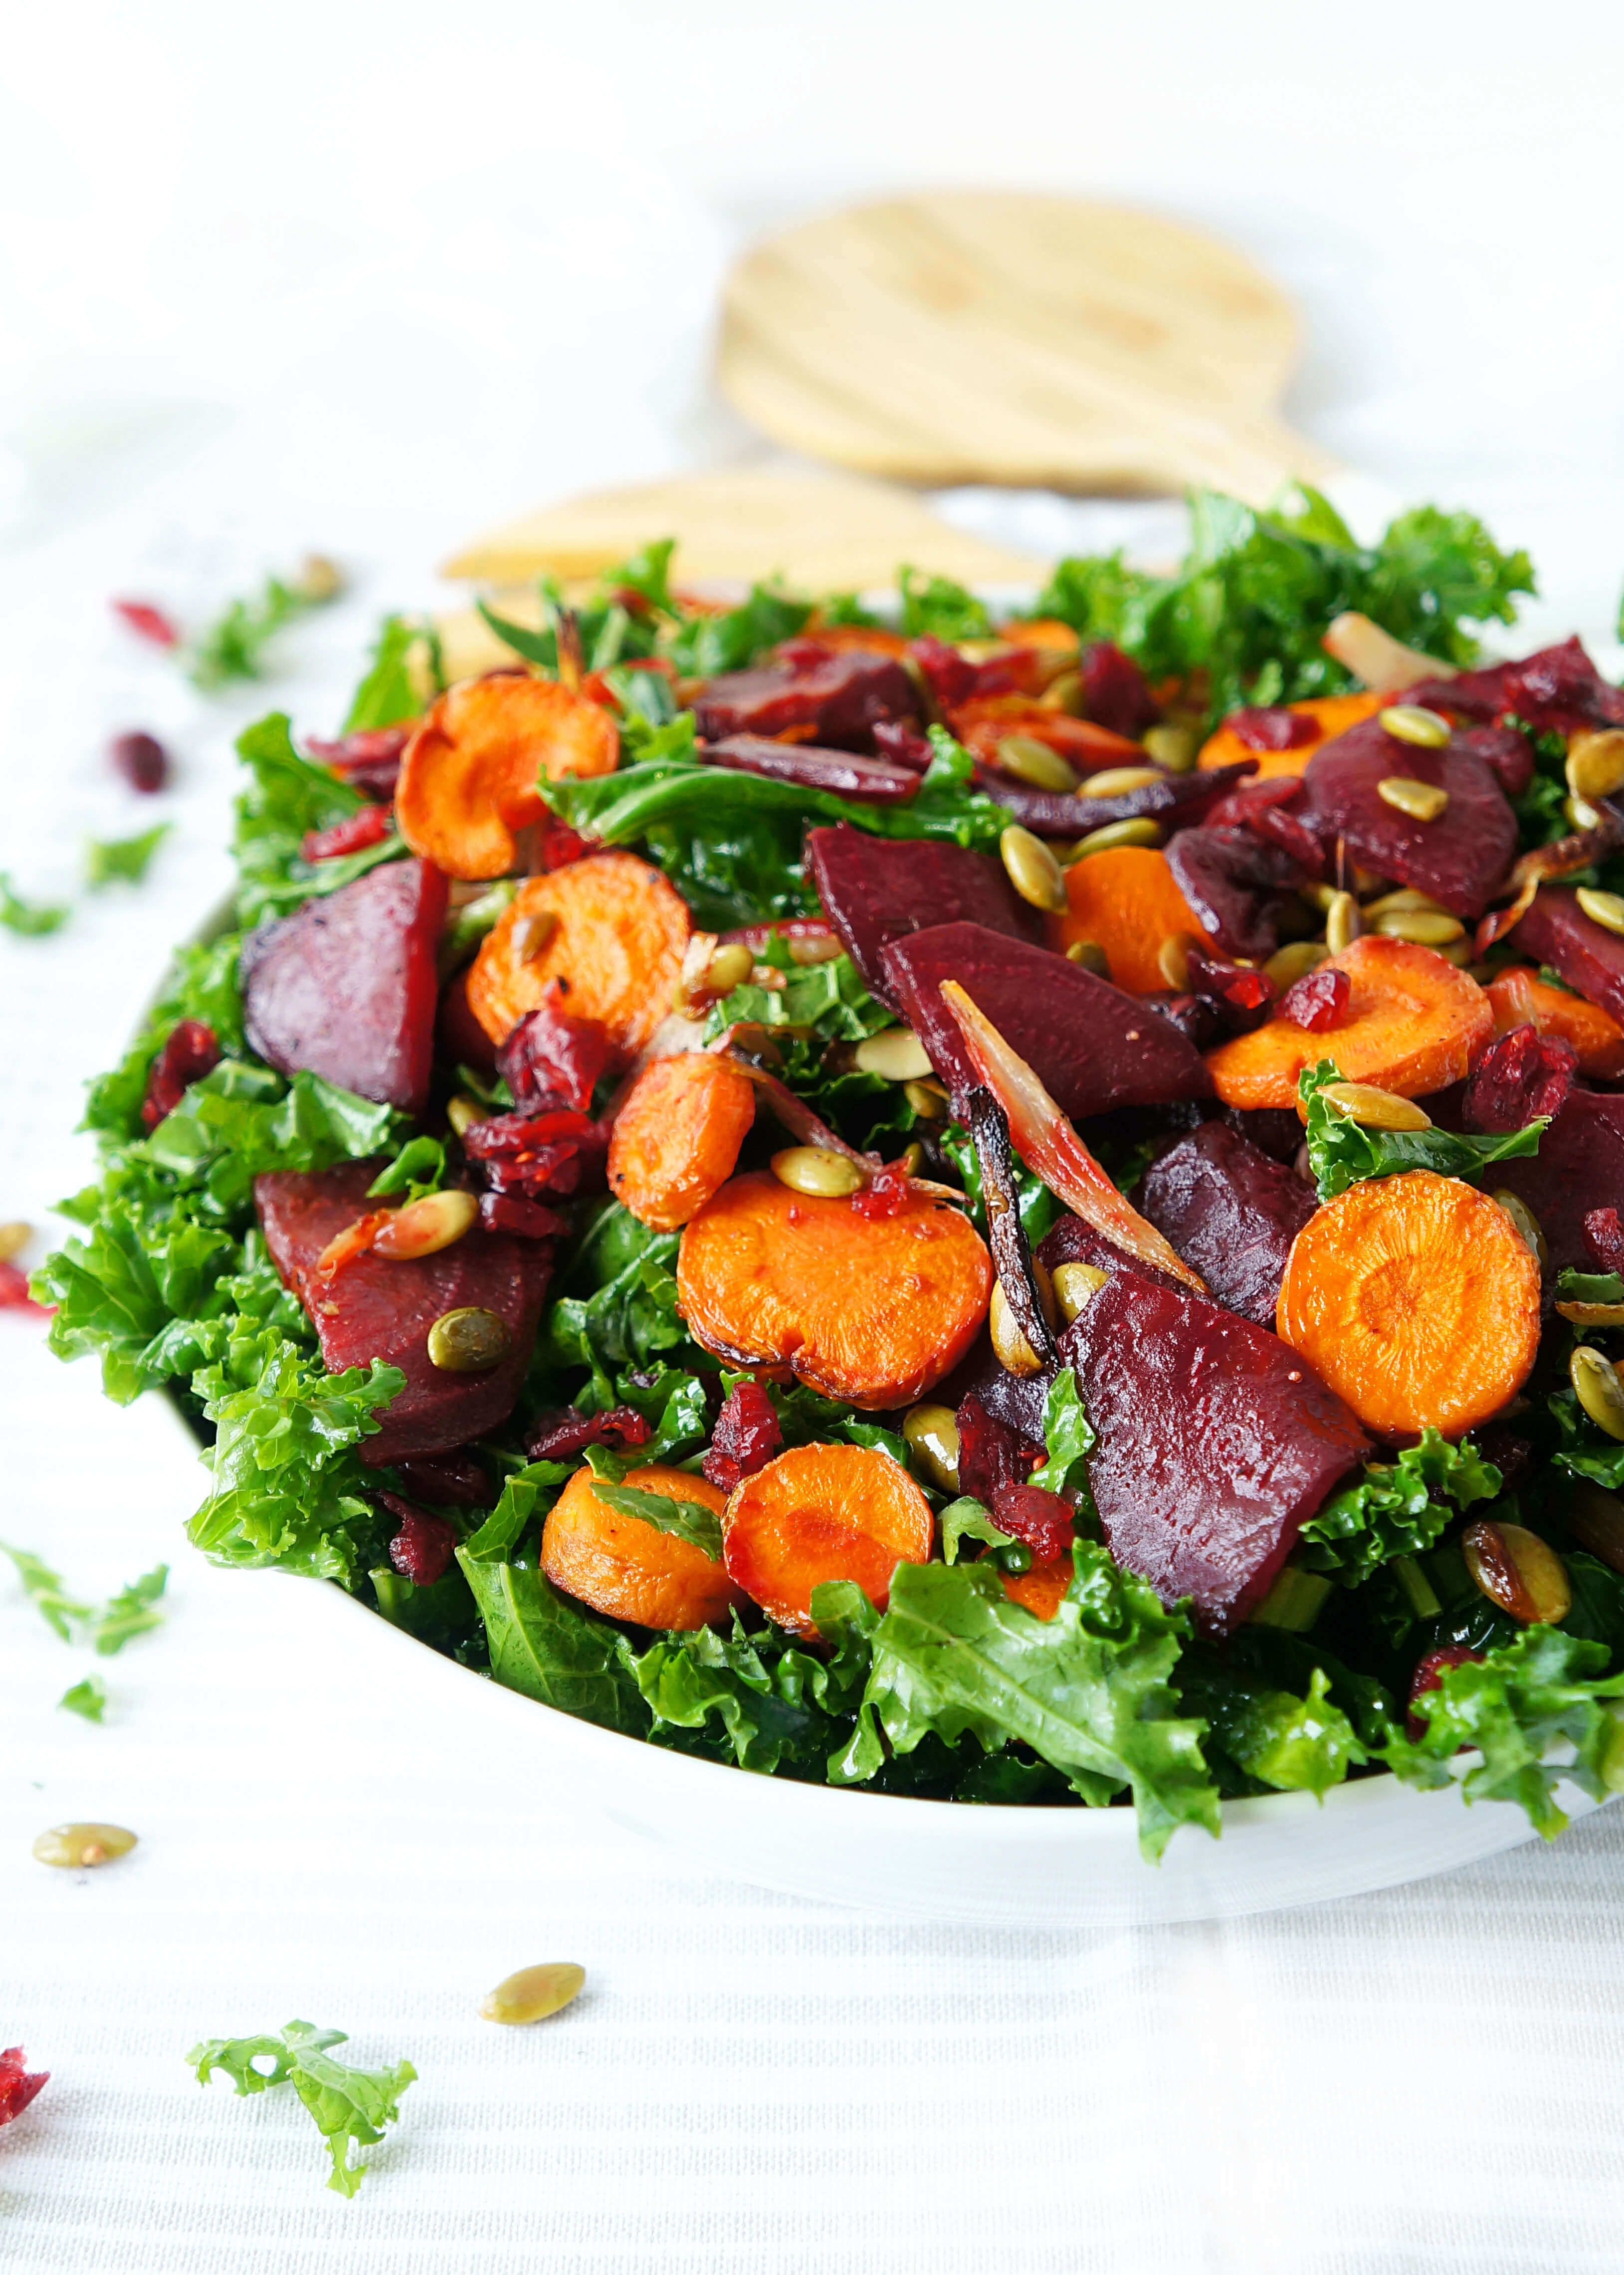 Roasted Beet, Carrot & Kale Salad #healthyliving